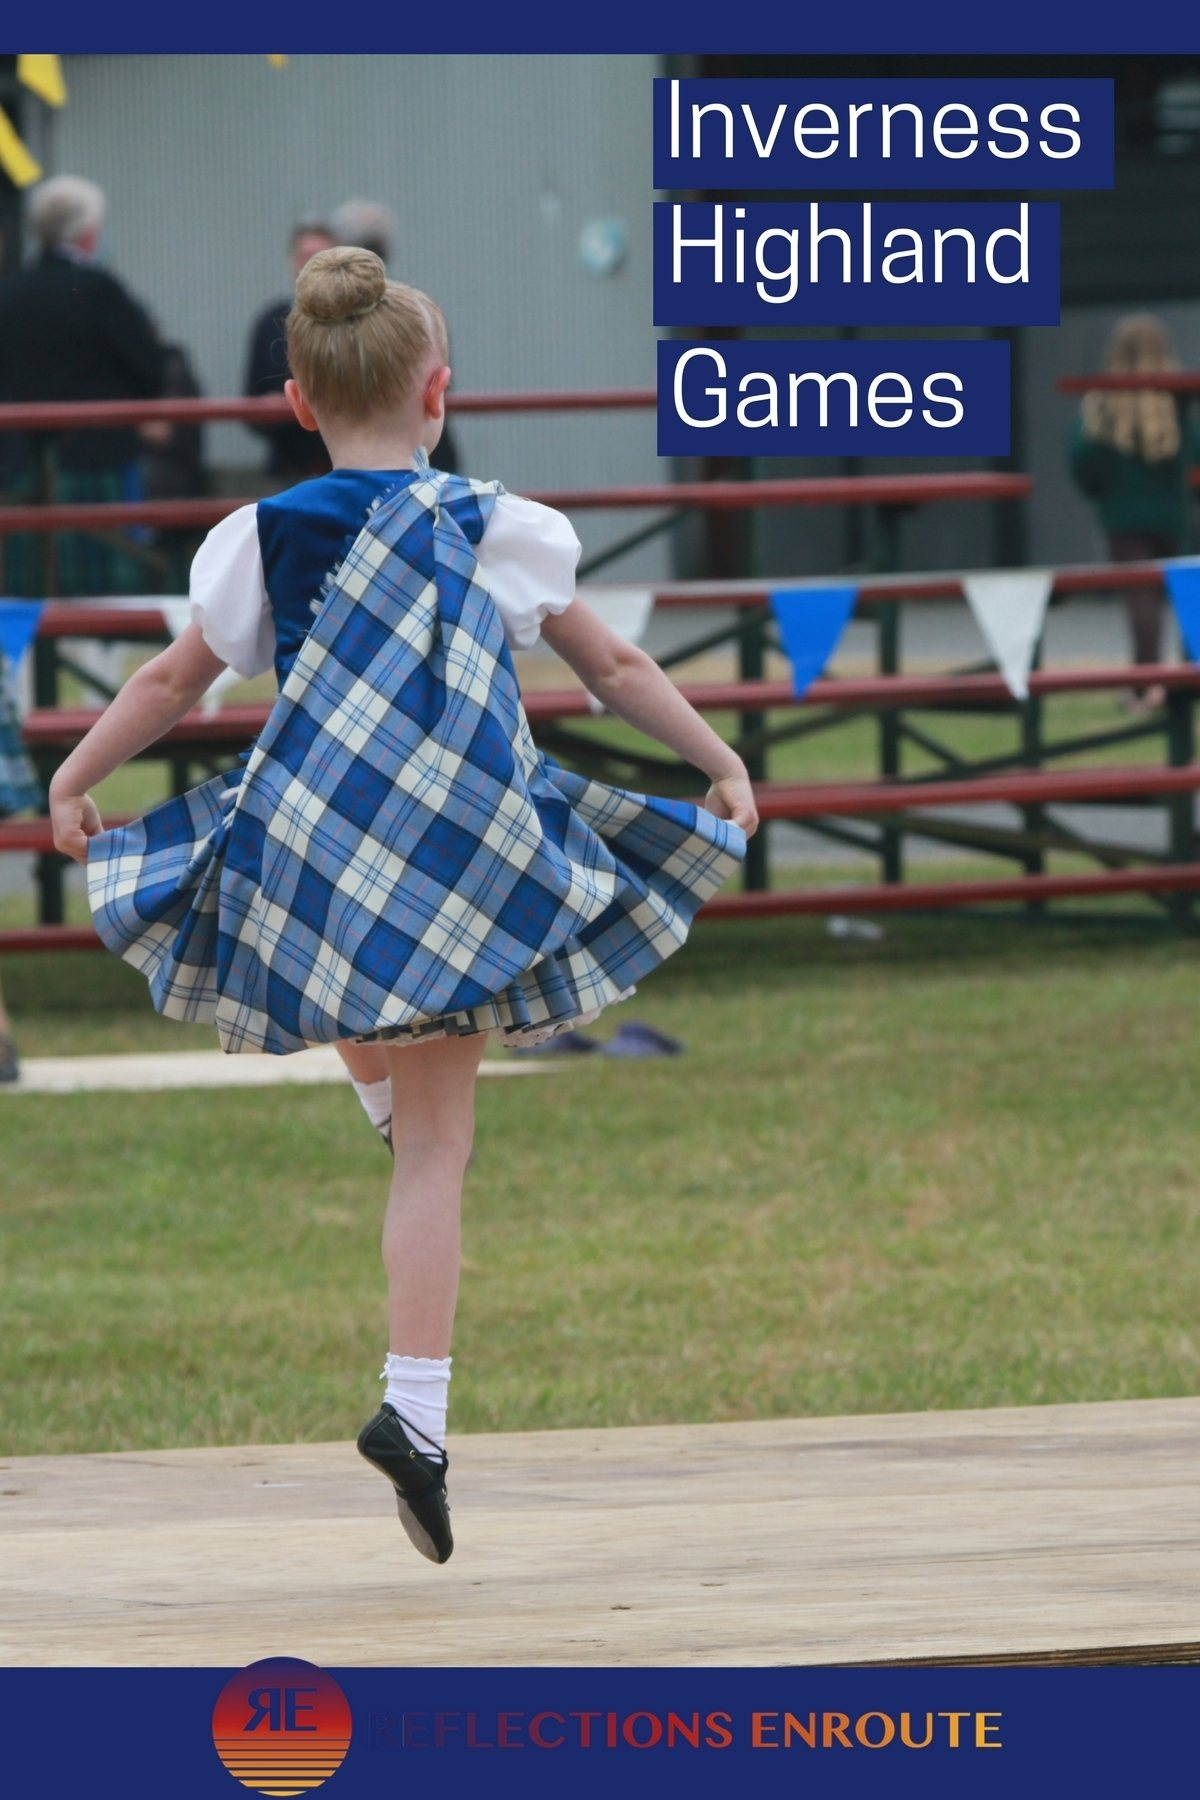 Grab your kilt and head off to the Inverness Highland Games to root for your clan!